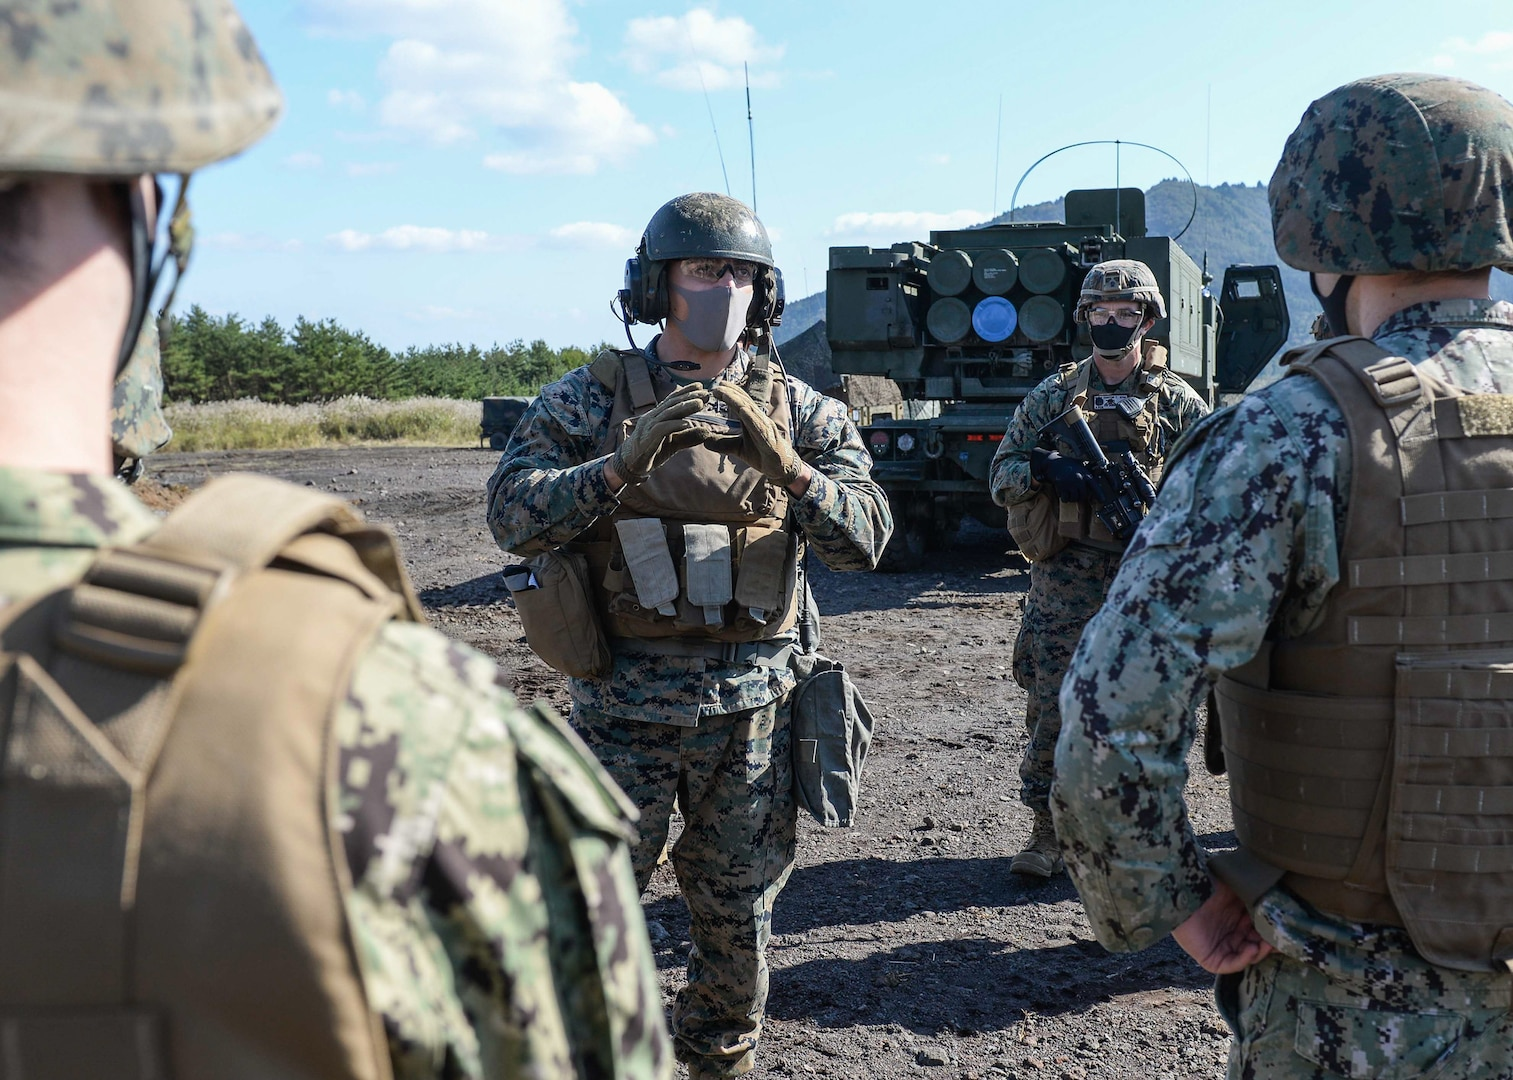 7th Fleet Staff Join 12th Marine Regiment for Live Fire Exercise